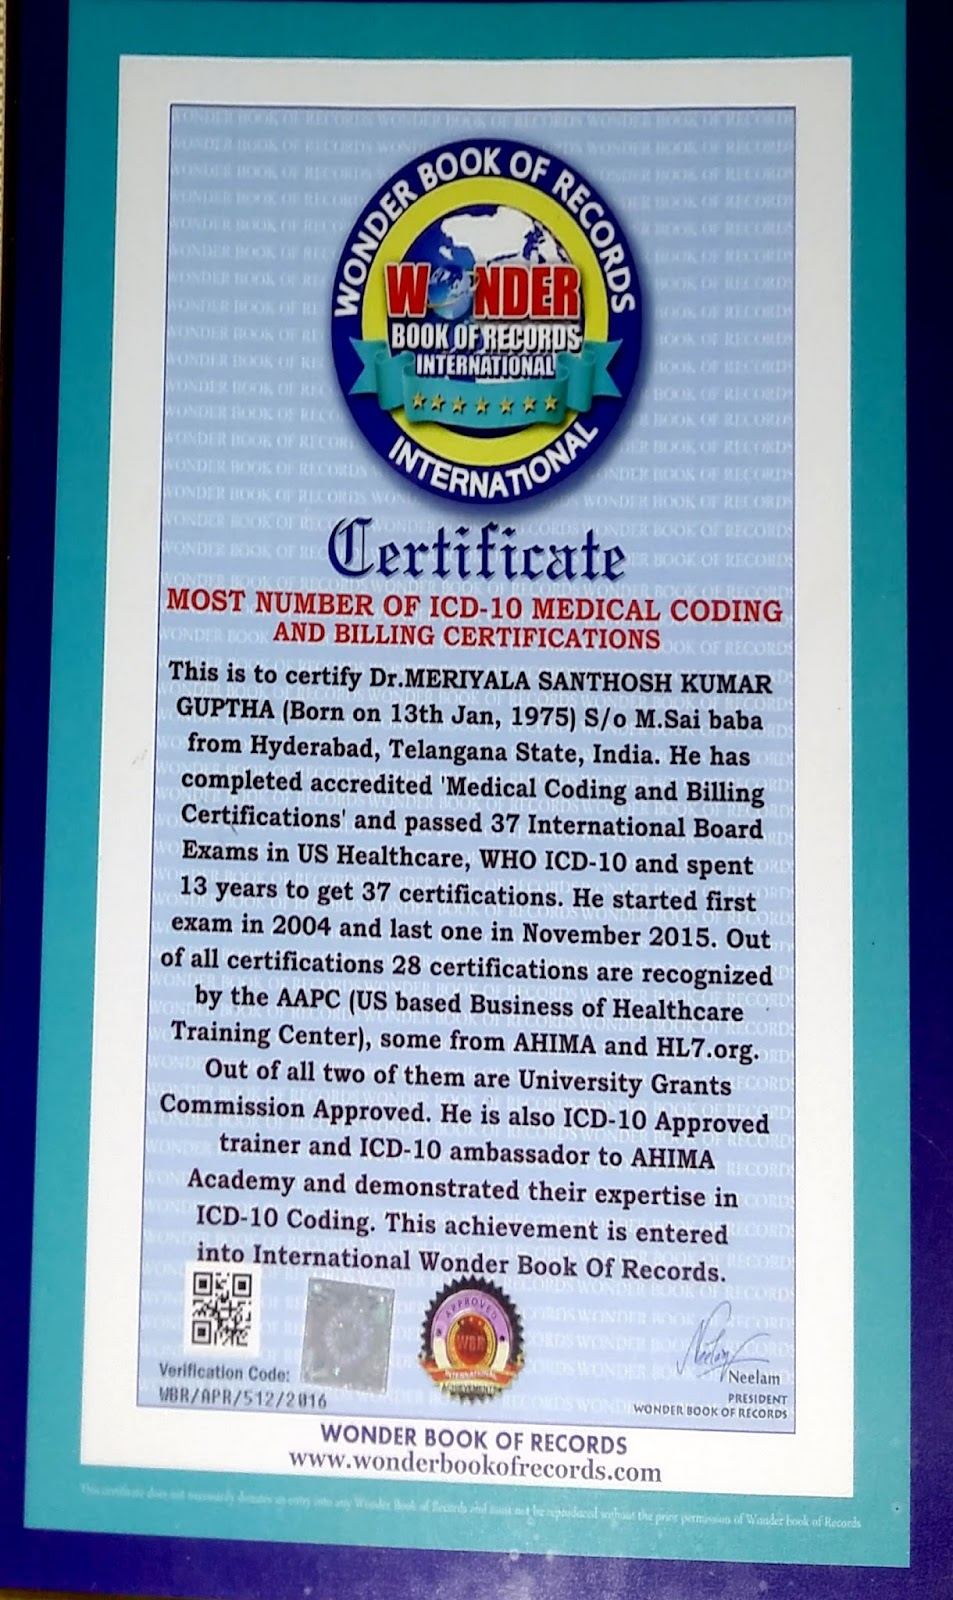 World record in medical coding dr guptha medesun medical coding he is also icd 10 approved trainer and icd 10 ambassador to ahima academy and demonstrated their expertise in icd 10 coding 1betcityfo Gallery